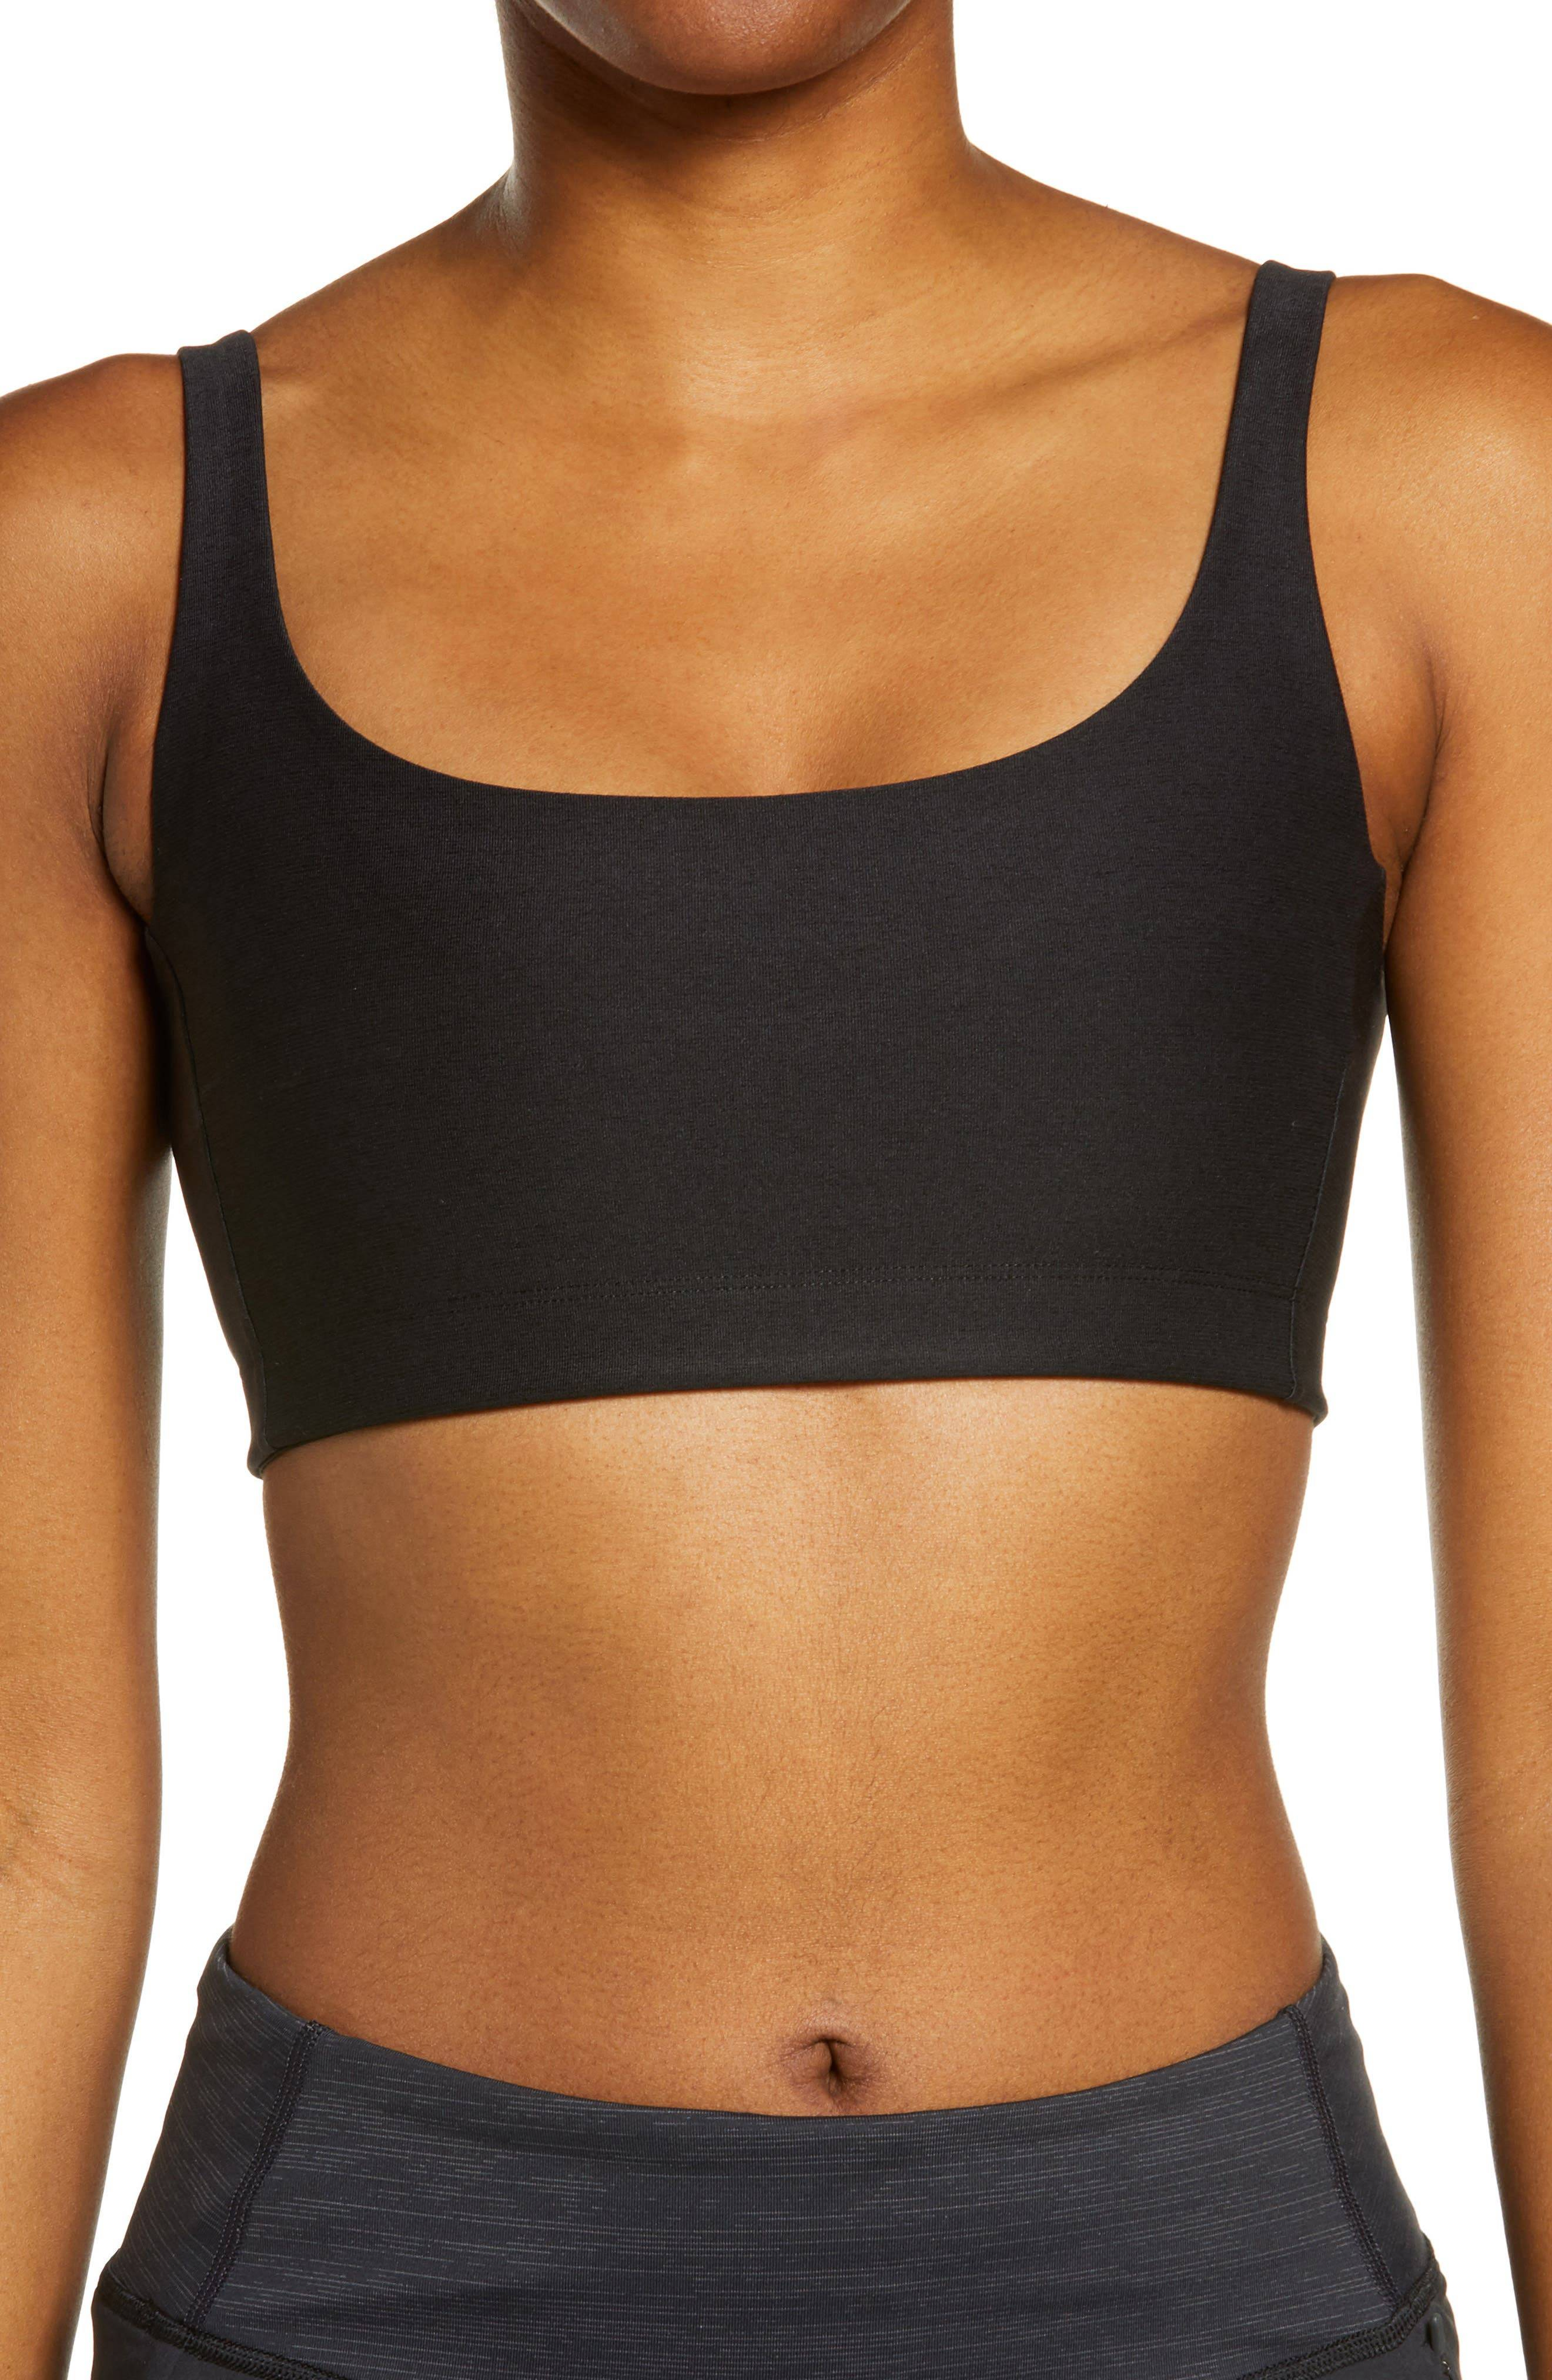 Outdoor Voices Women's Outdoor Voices Double Time Sports Bra, Size Large - Black